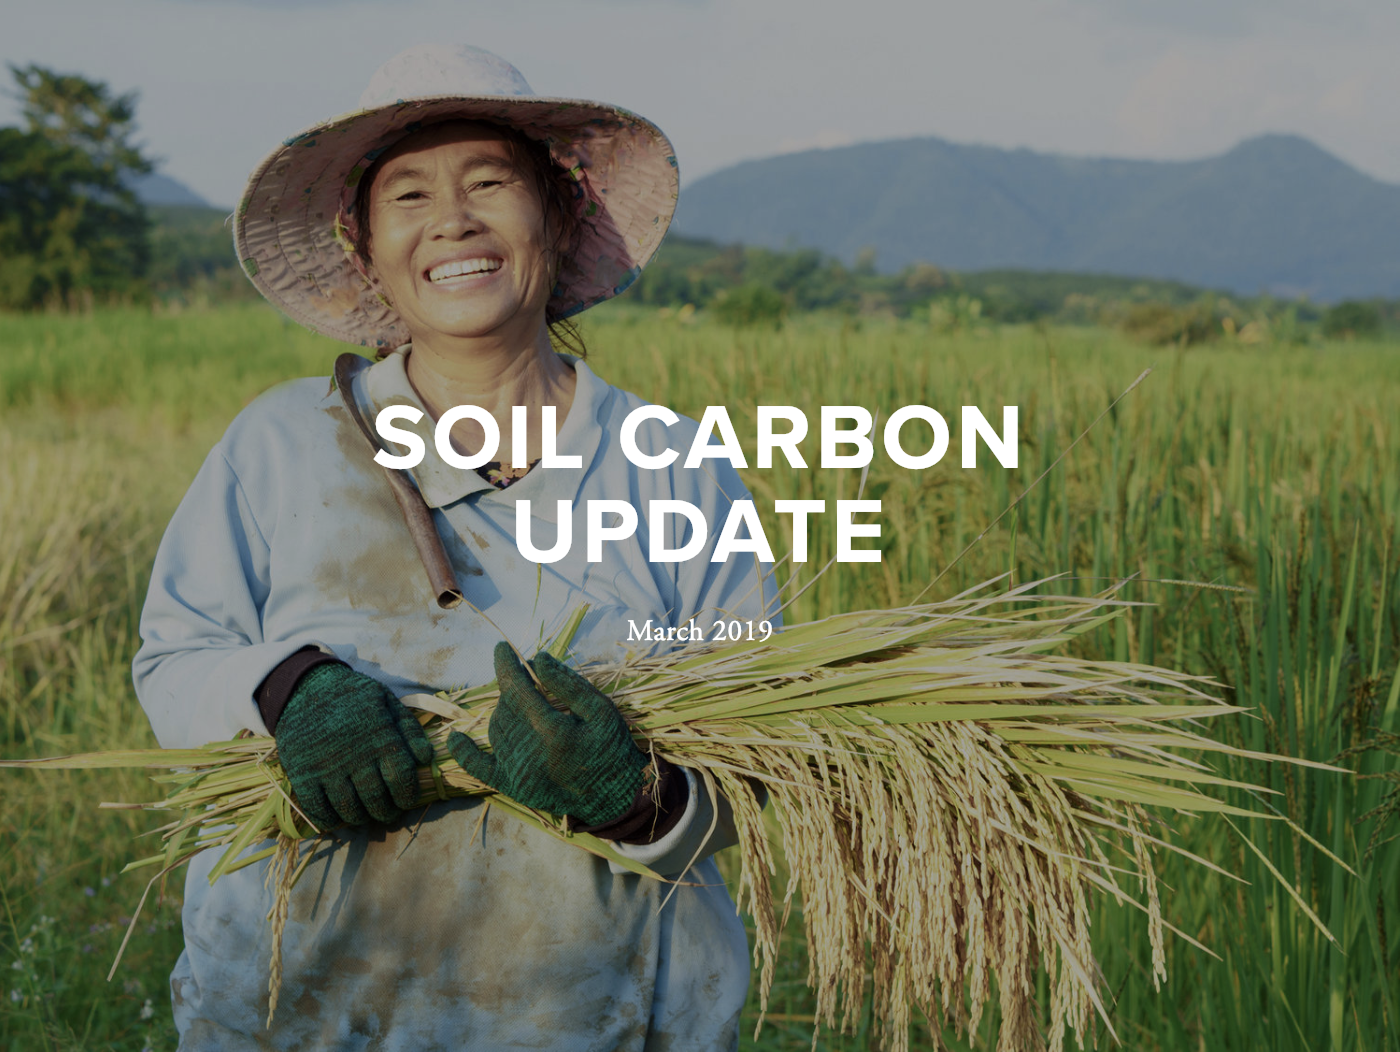 March 2019 Update - This update includes features on news and resources for and about farmers, reports, policy developments, conferences and events, supply chains, viticulture, media coverage and books.